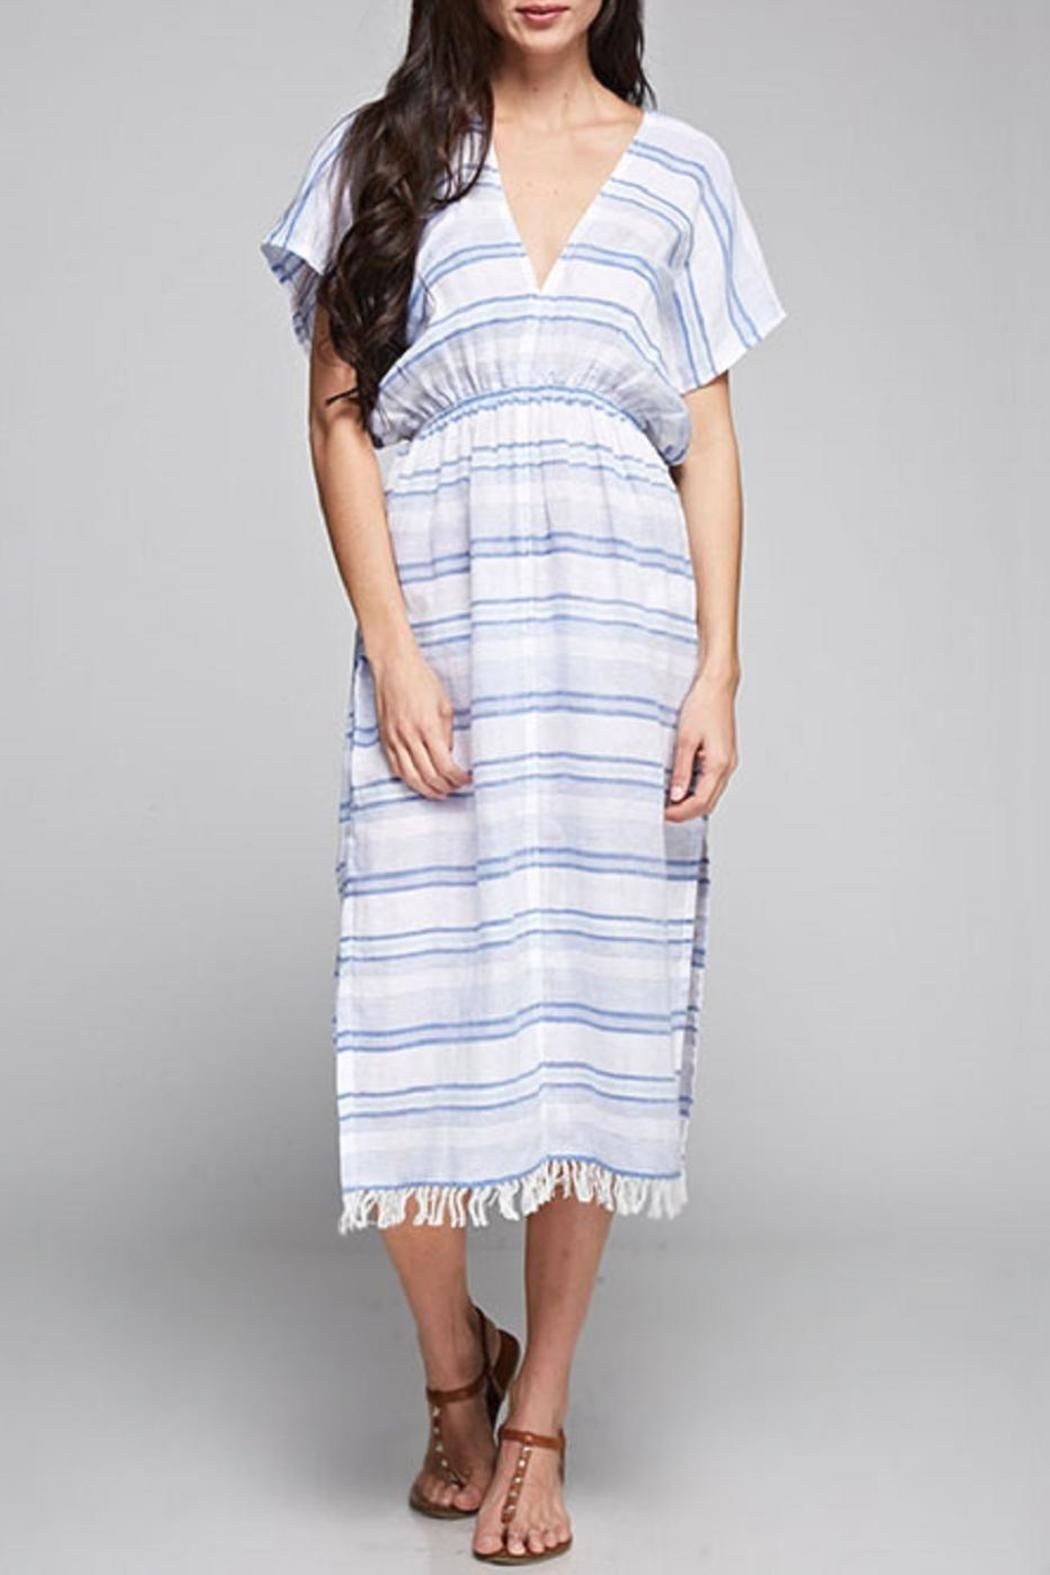 This V-Neck long cotton caftan styled dress features small side slits and a fringed hem   V-Neck Dress by Lovestitch. Clothing - Dresses - Casual Arizona